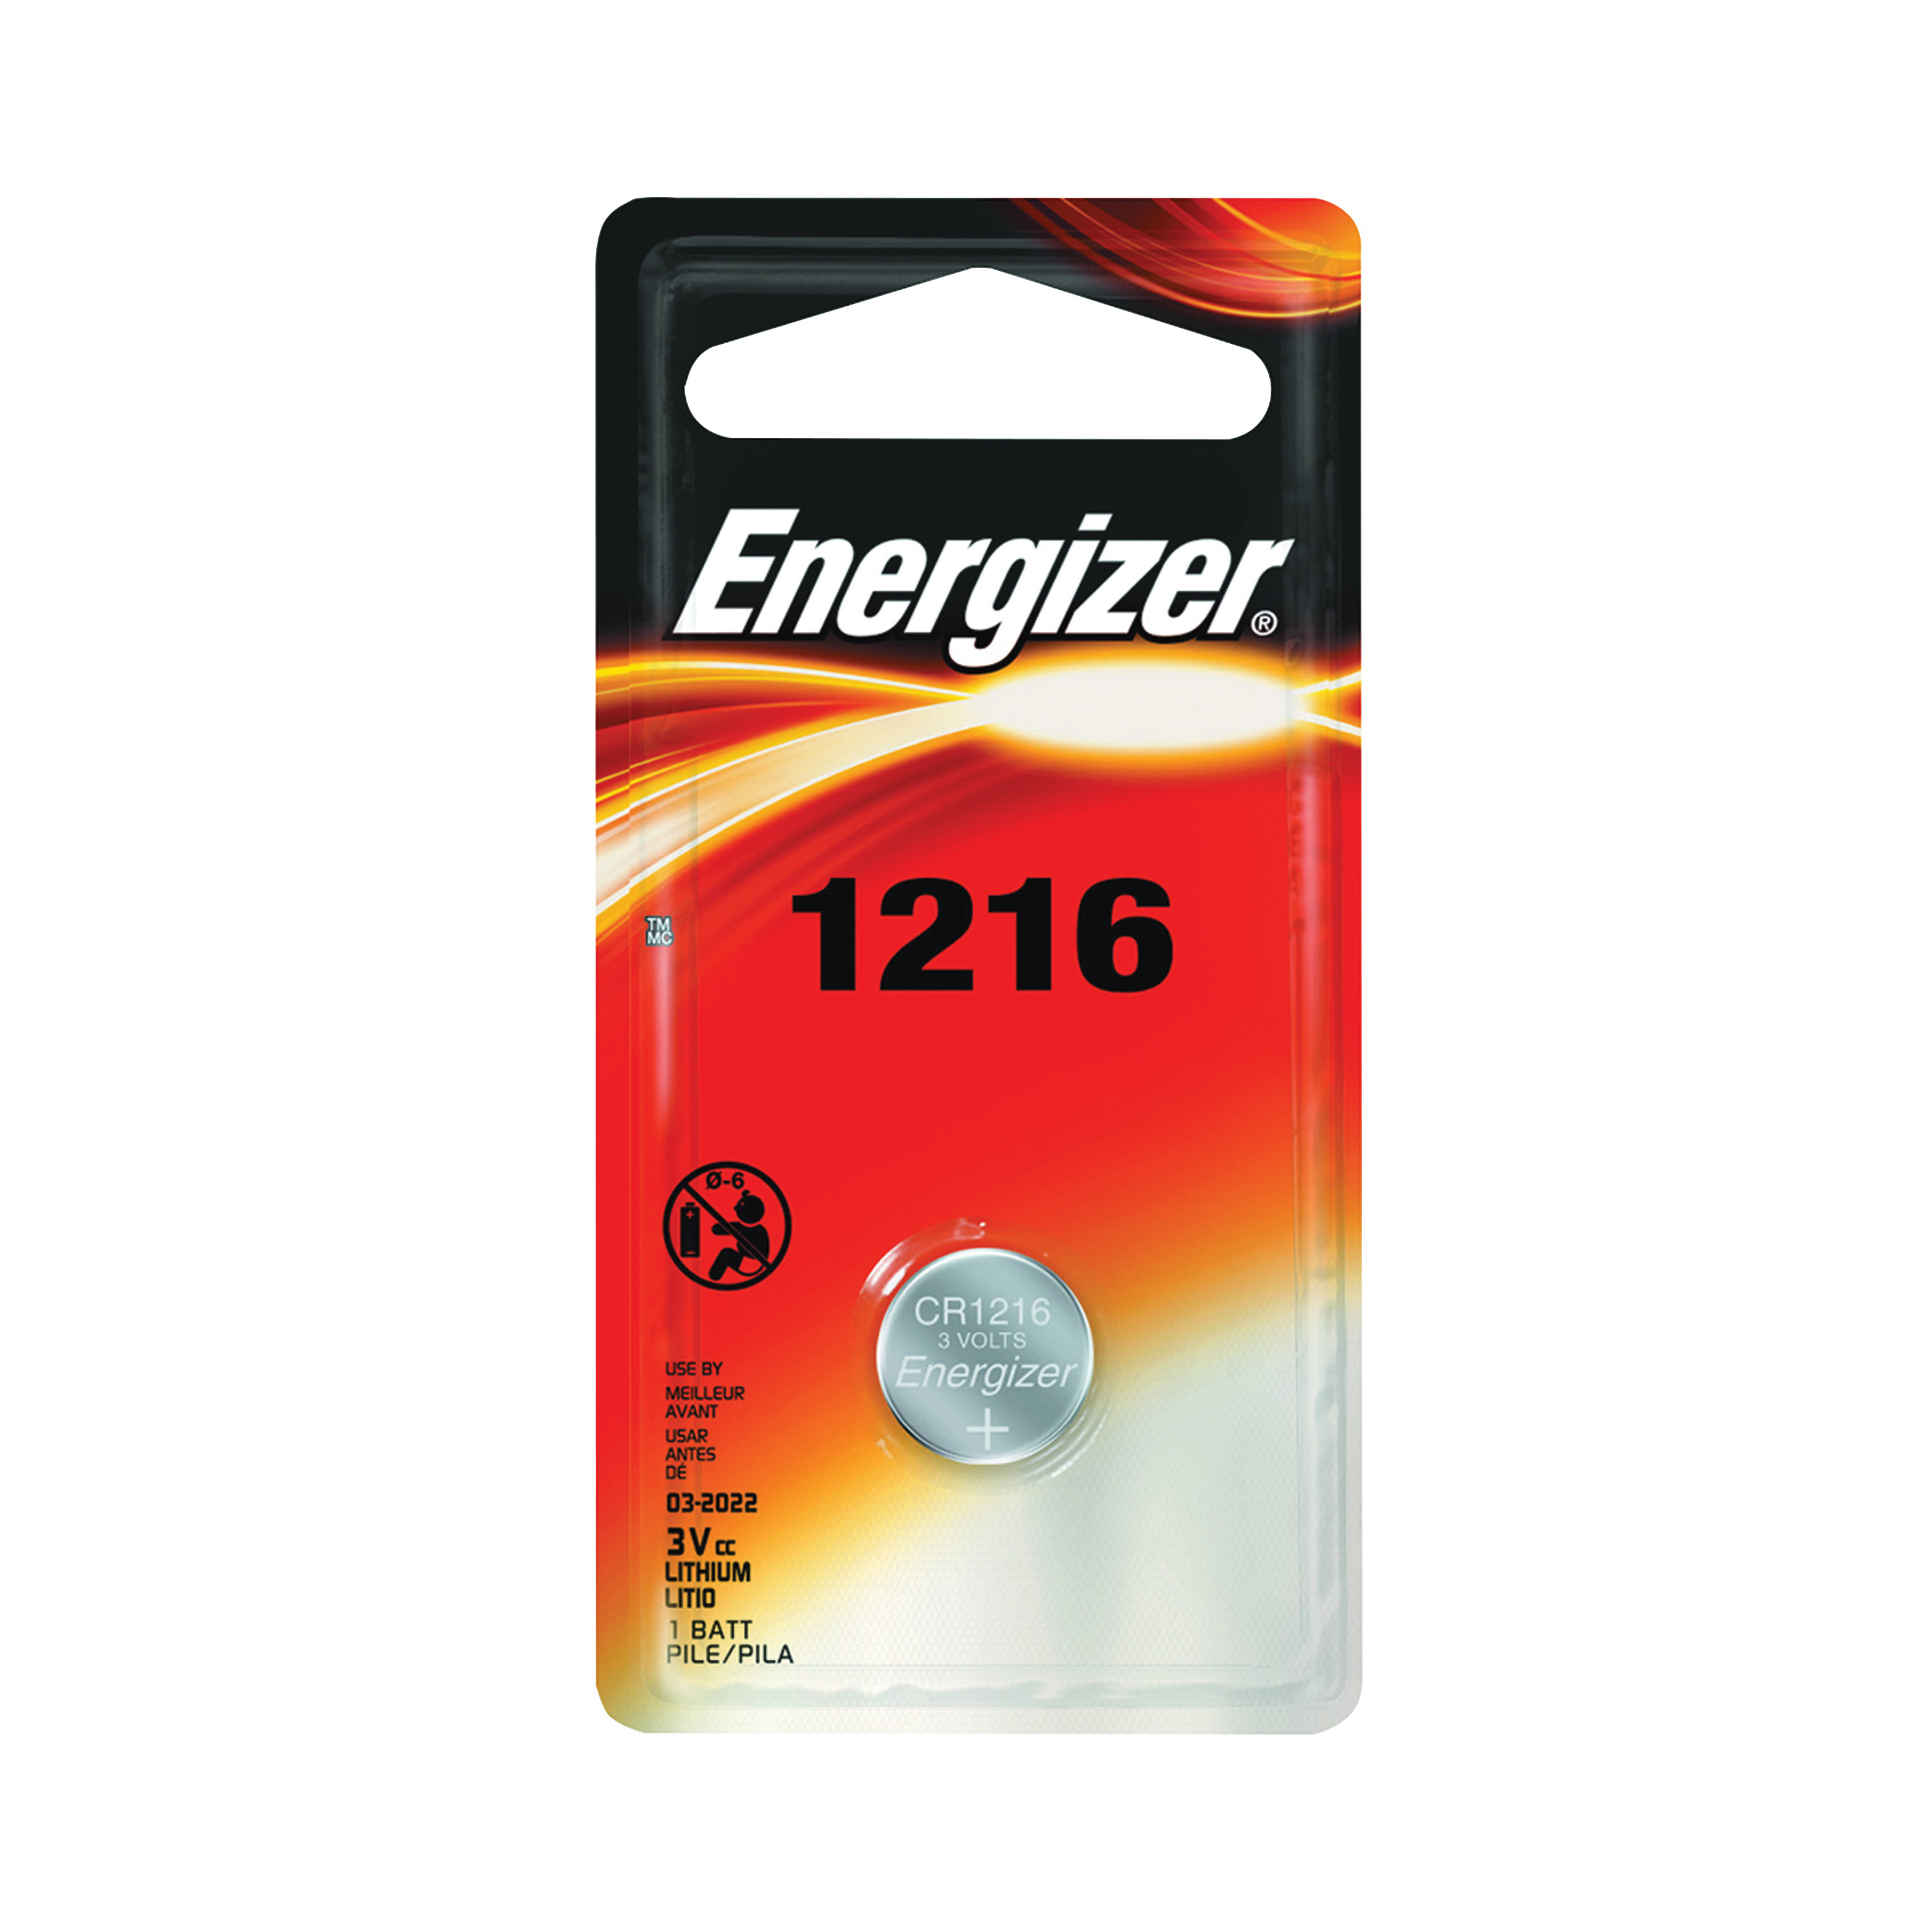 Picture of Energizer ECR1216BP Coin Cell Battery, 3 V Battery, 25 mAh, CR1216 Battery, Lithium, Manganese Dioxide